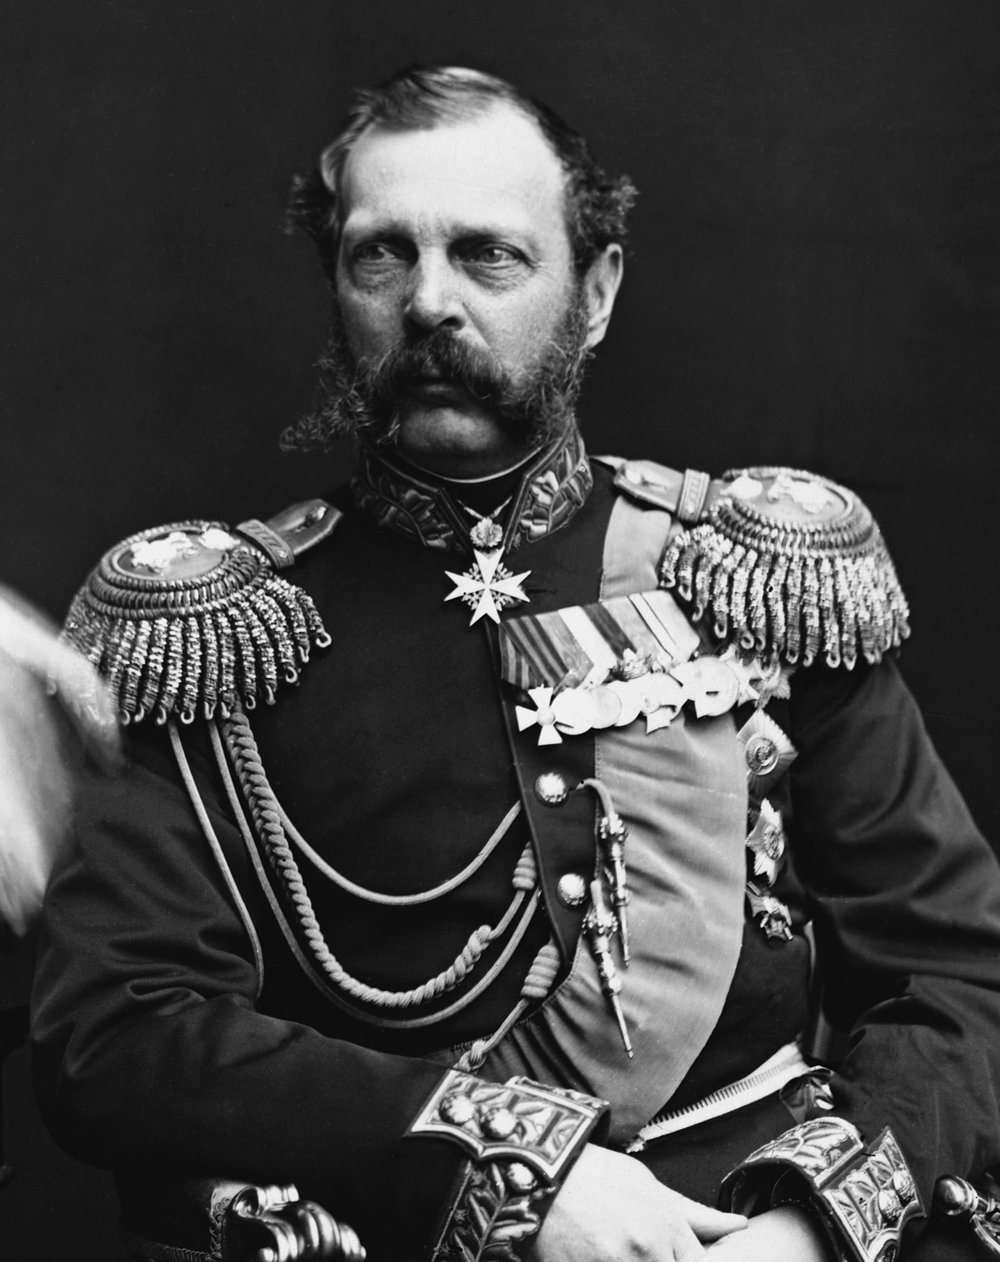 Tsar Alexander II of the Russian Empire. He reigned as Emperor from 1855 until 1881 when he was assassinated. He is best known for his Emancipation Edict which freed the serfs in the Russian Empire.